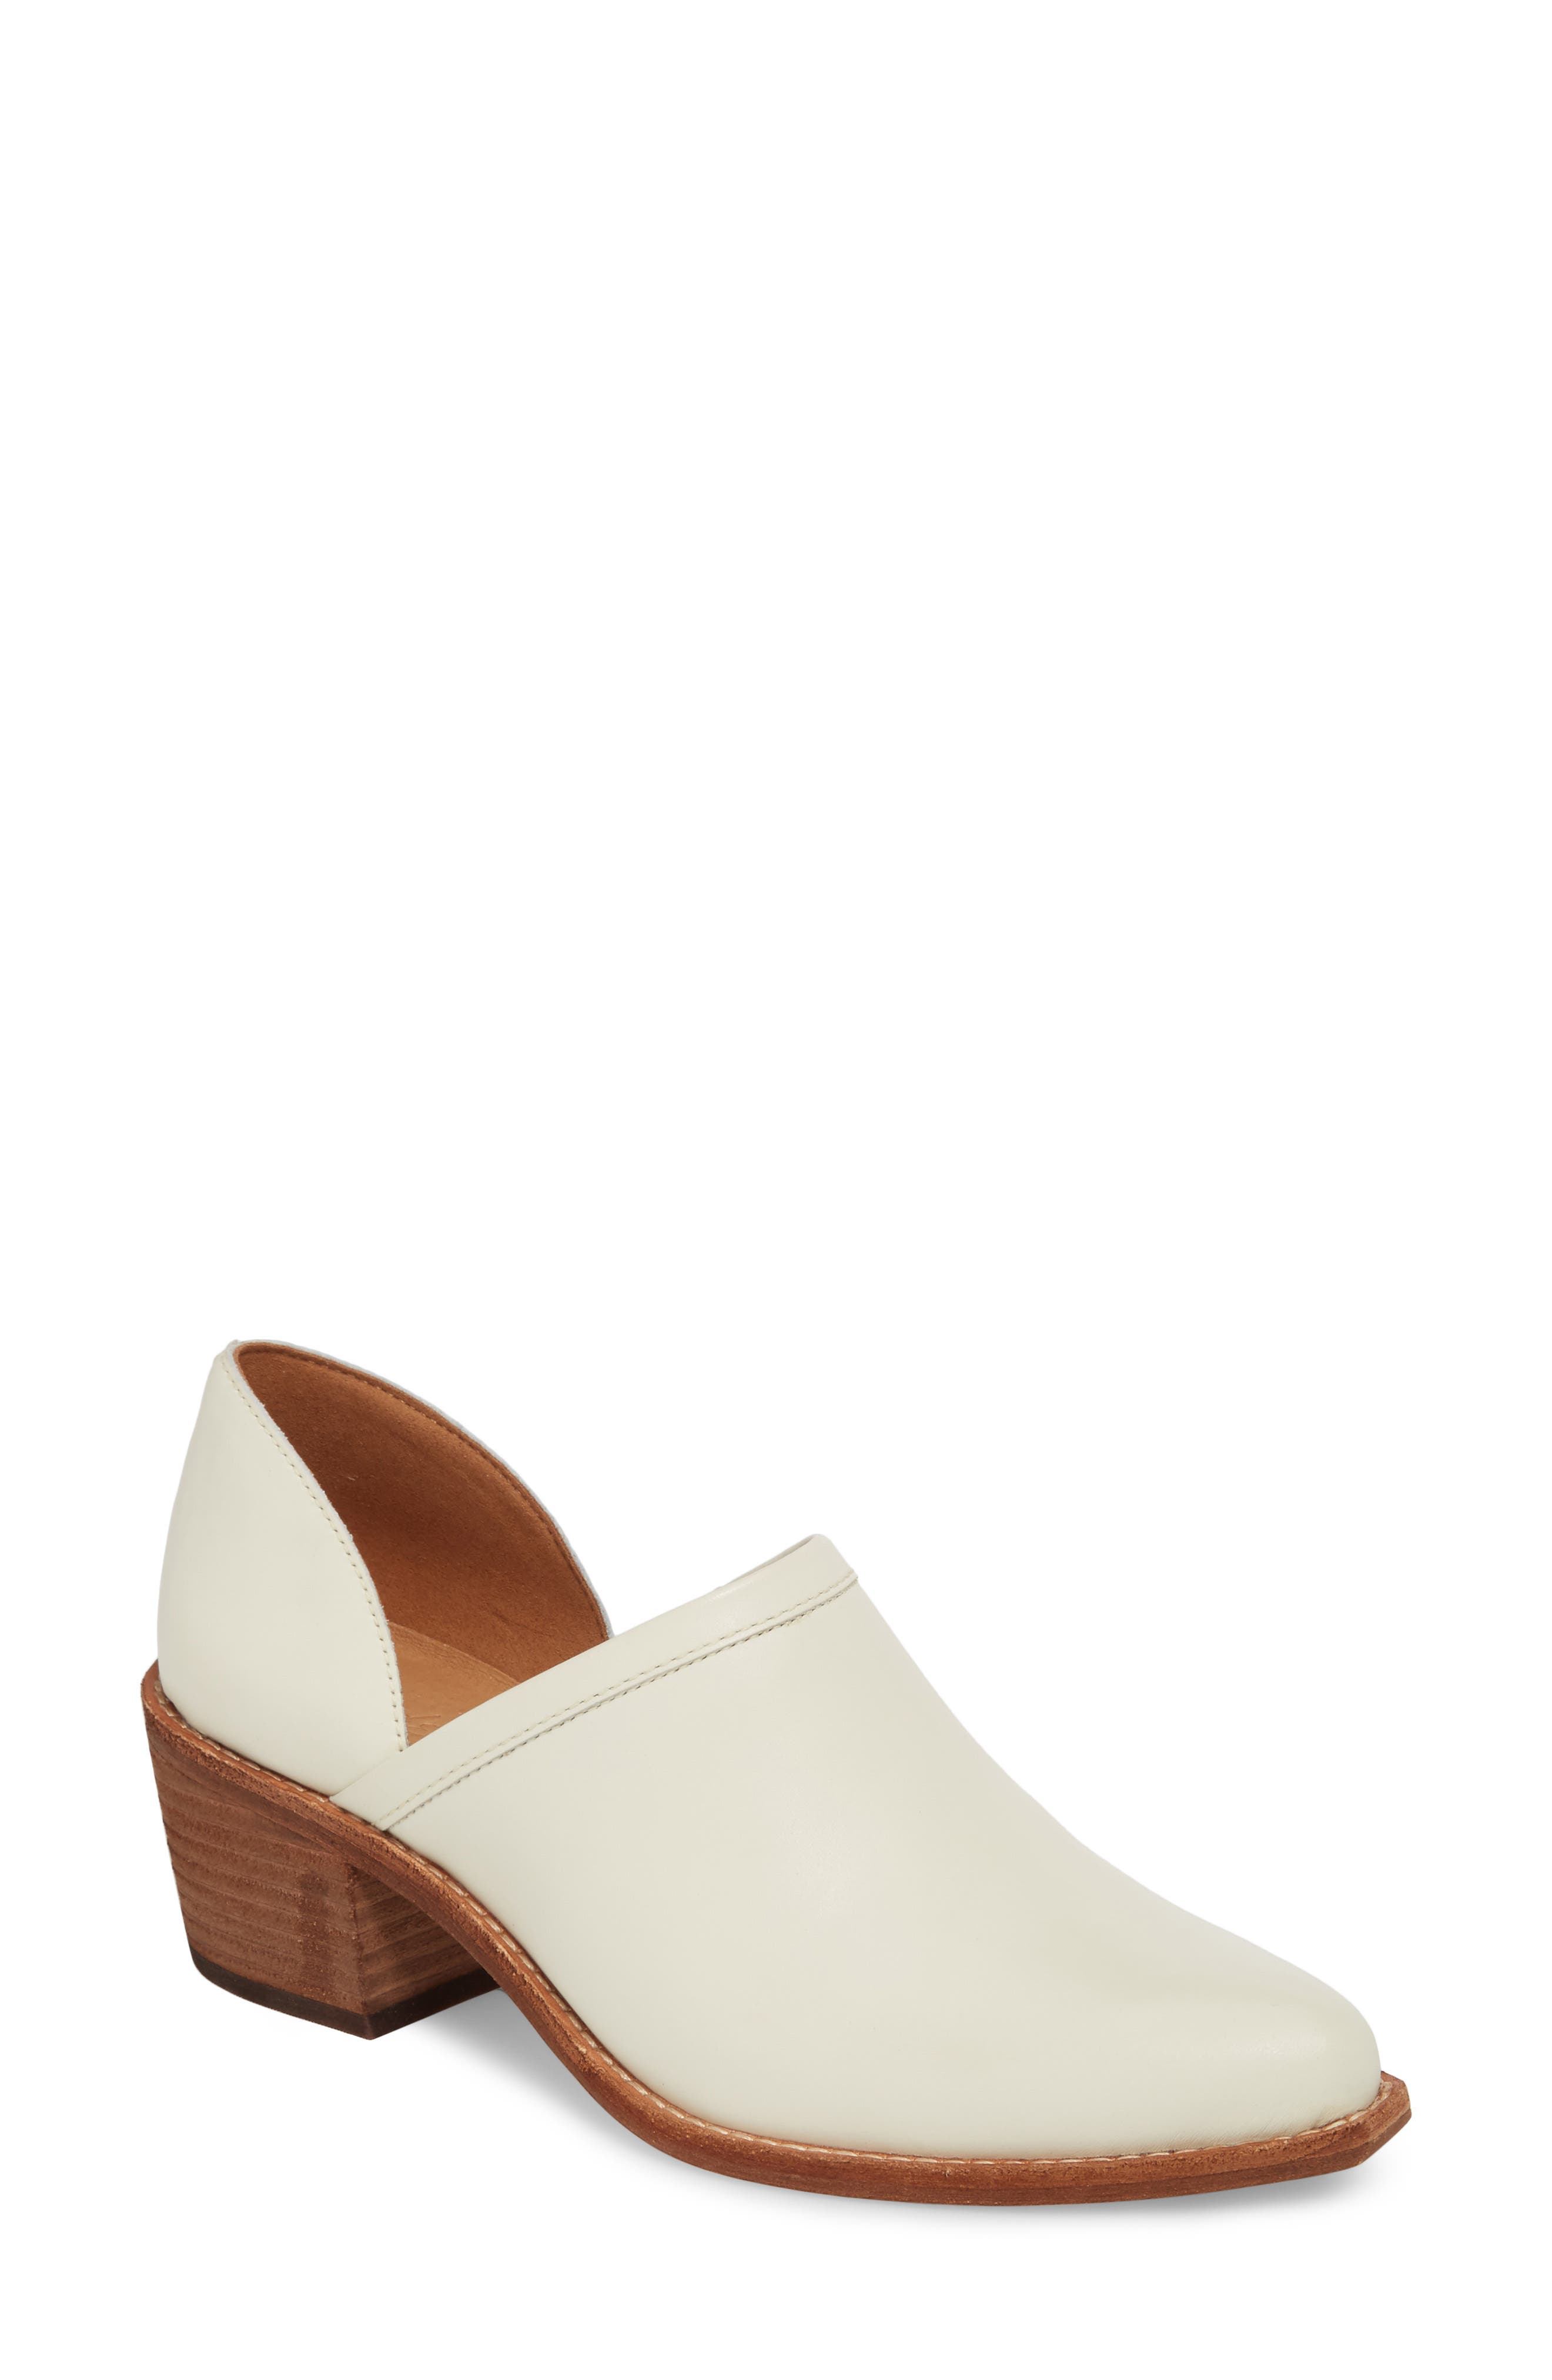 Brady Block Heel Bootie,                             Main thumbnail 1, color,                             VINTAGE CANVAS LEATHER